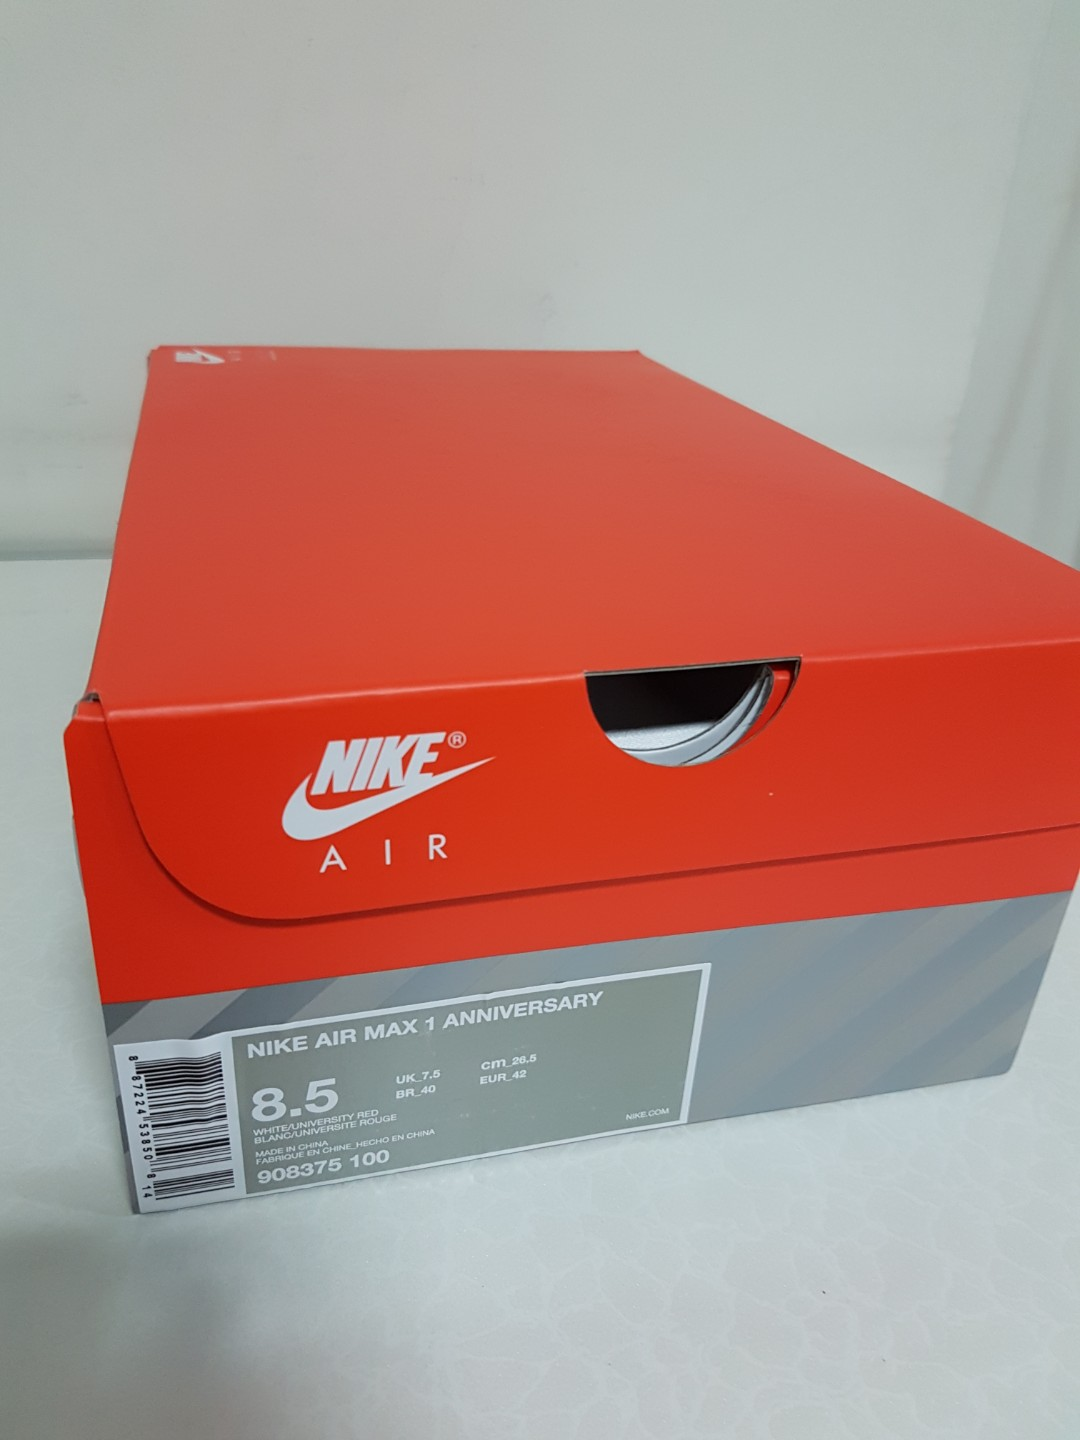 NIKE AIRMAX 1 OG 30th Anniversary RED (LIMITED EDITION) 7f5e29d02